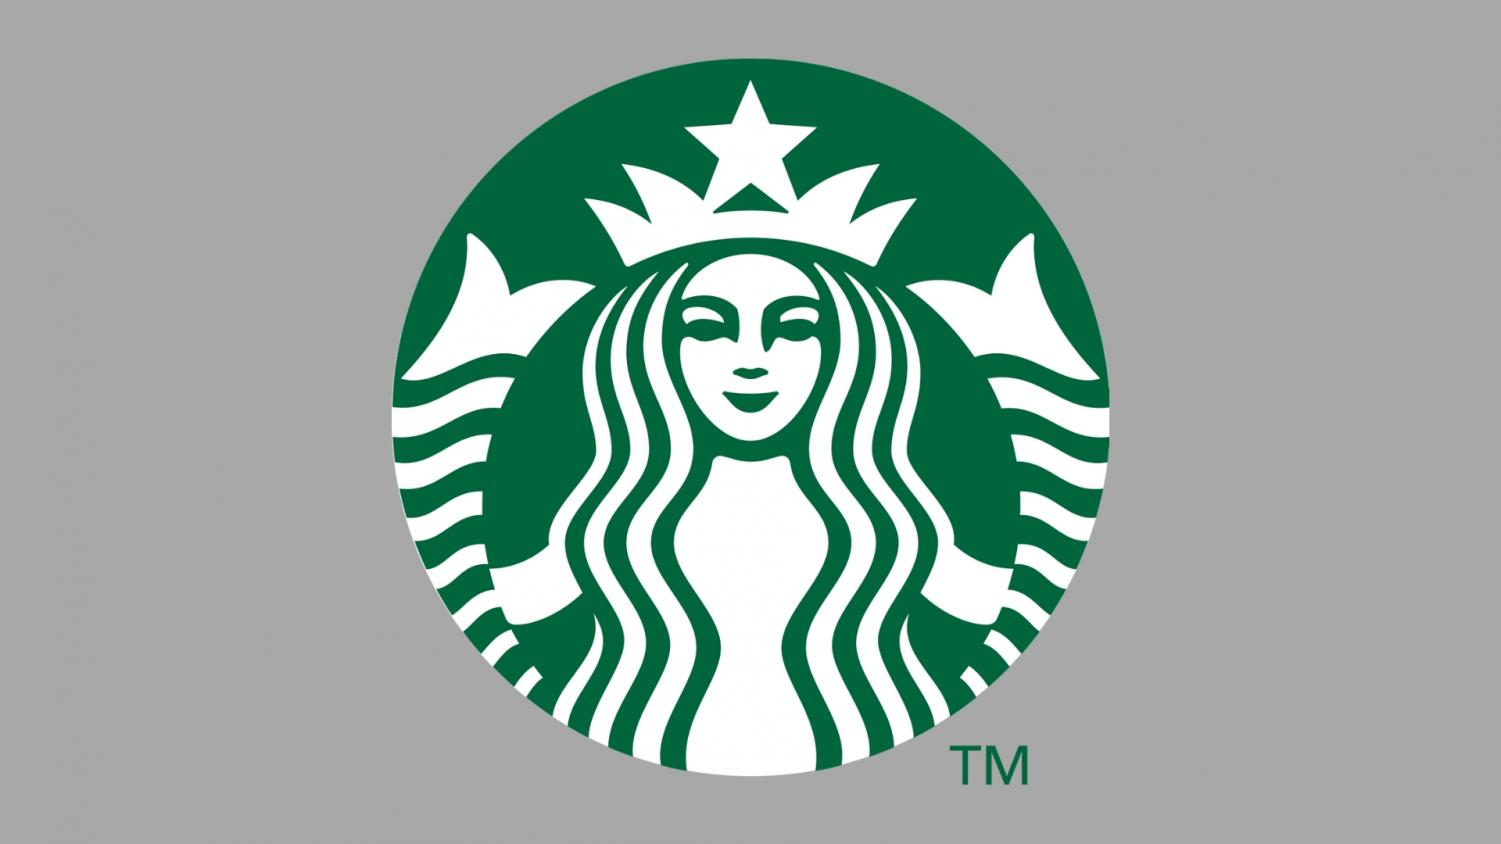 Starbucks is one of many companies that are implementing diversity training into their company standards.